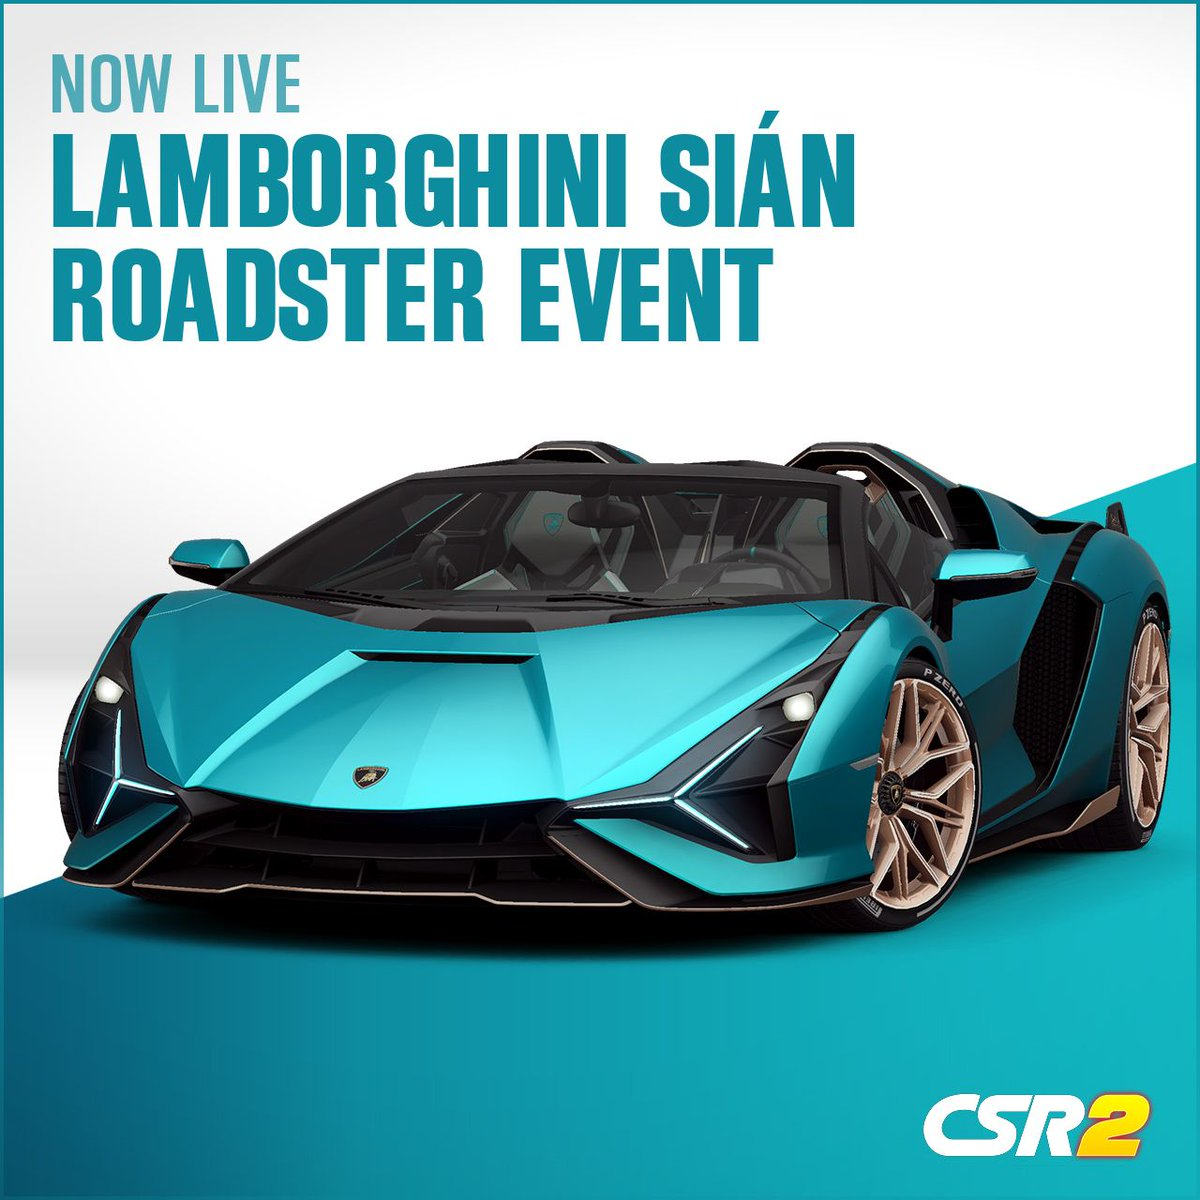 The Lamborghini Sián Roadster event is now live! Get down to the track and race some of the most incredible cars around. What is your favorite Lamborghini? #CSR2 https://t.co/OLT5WAPGKA